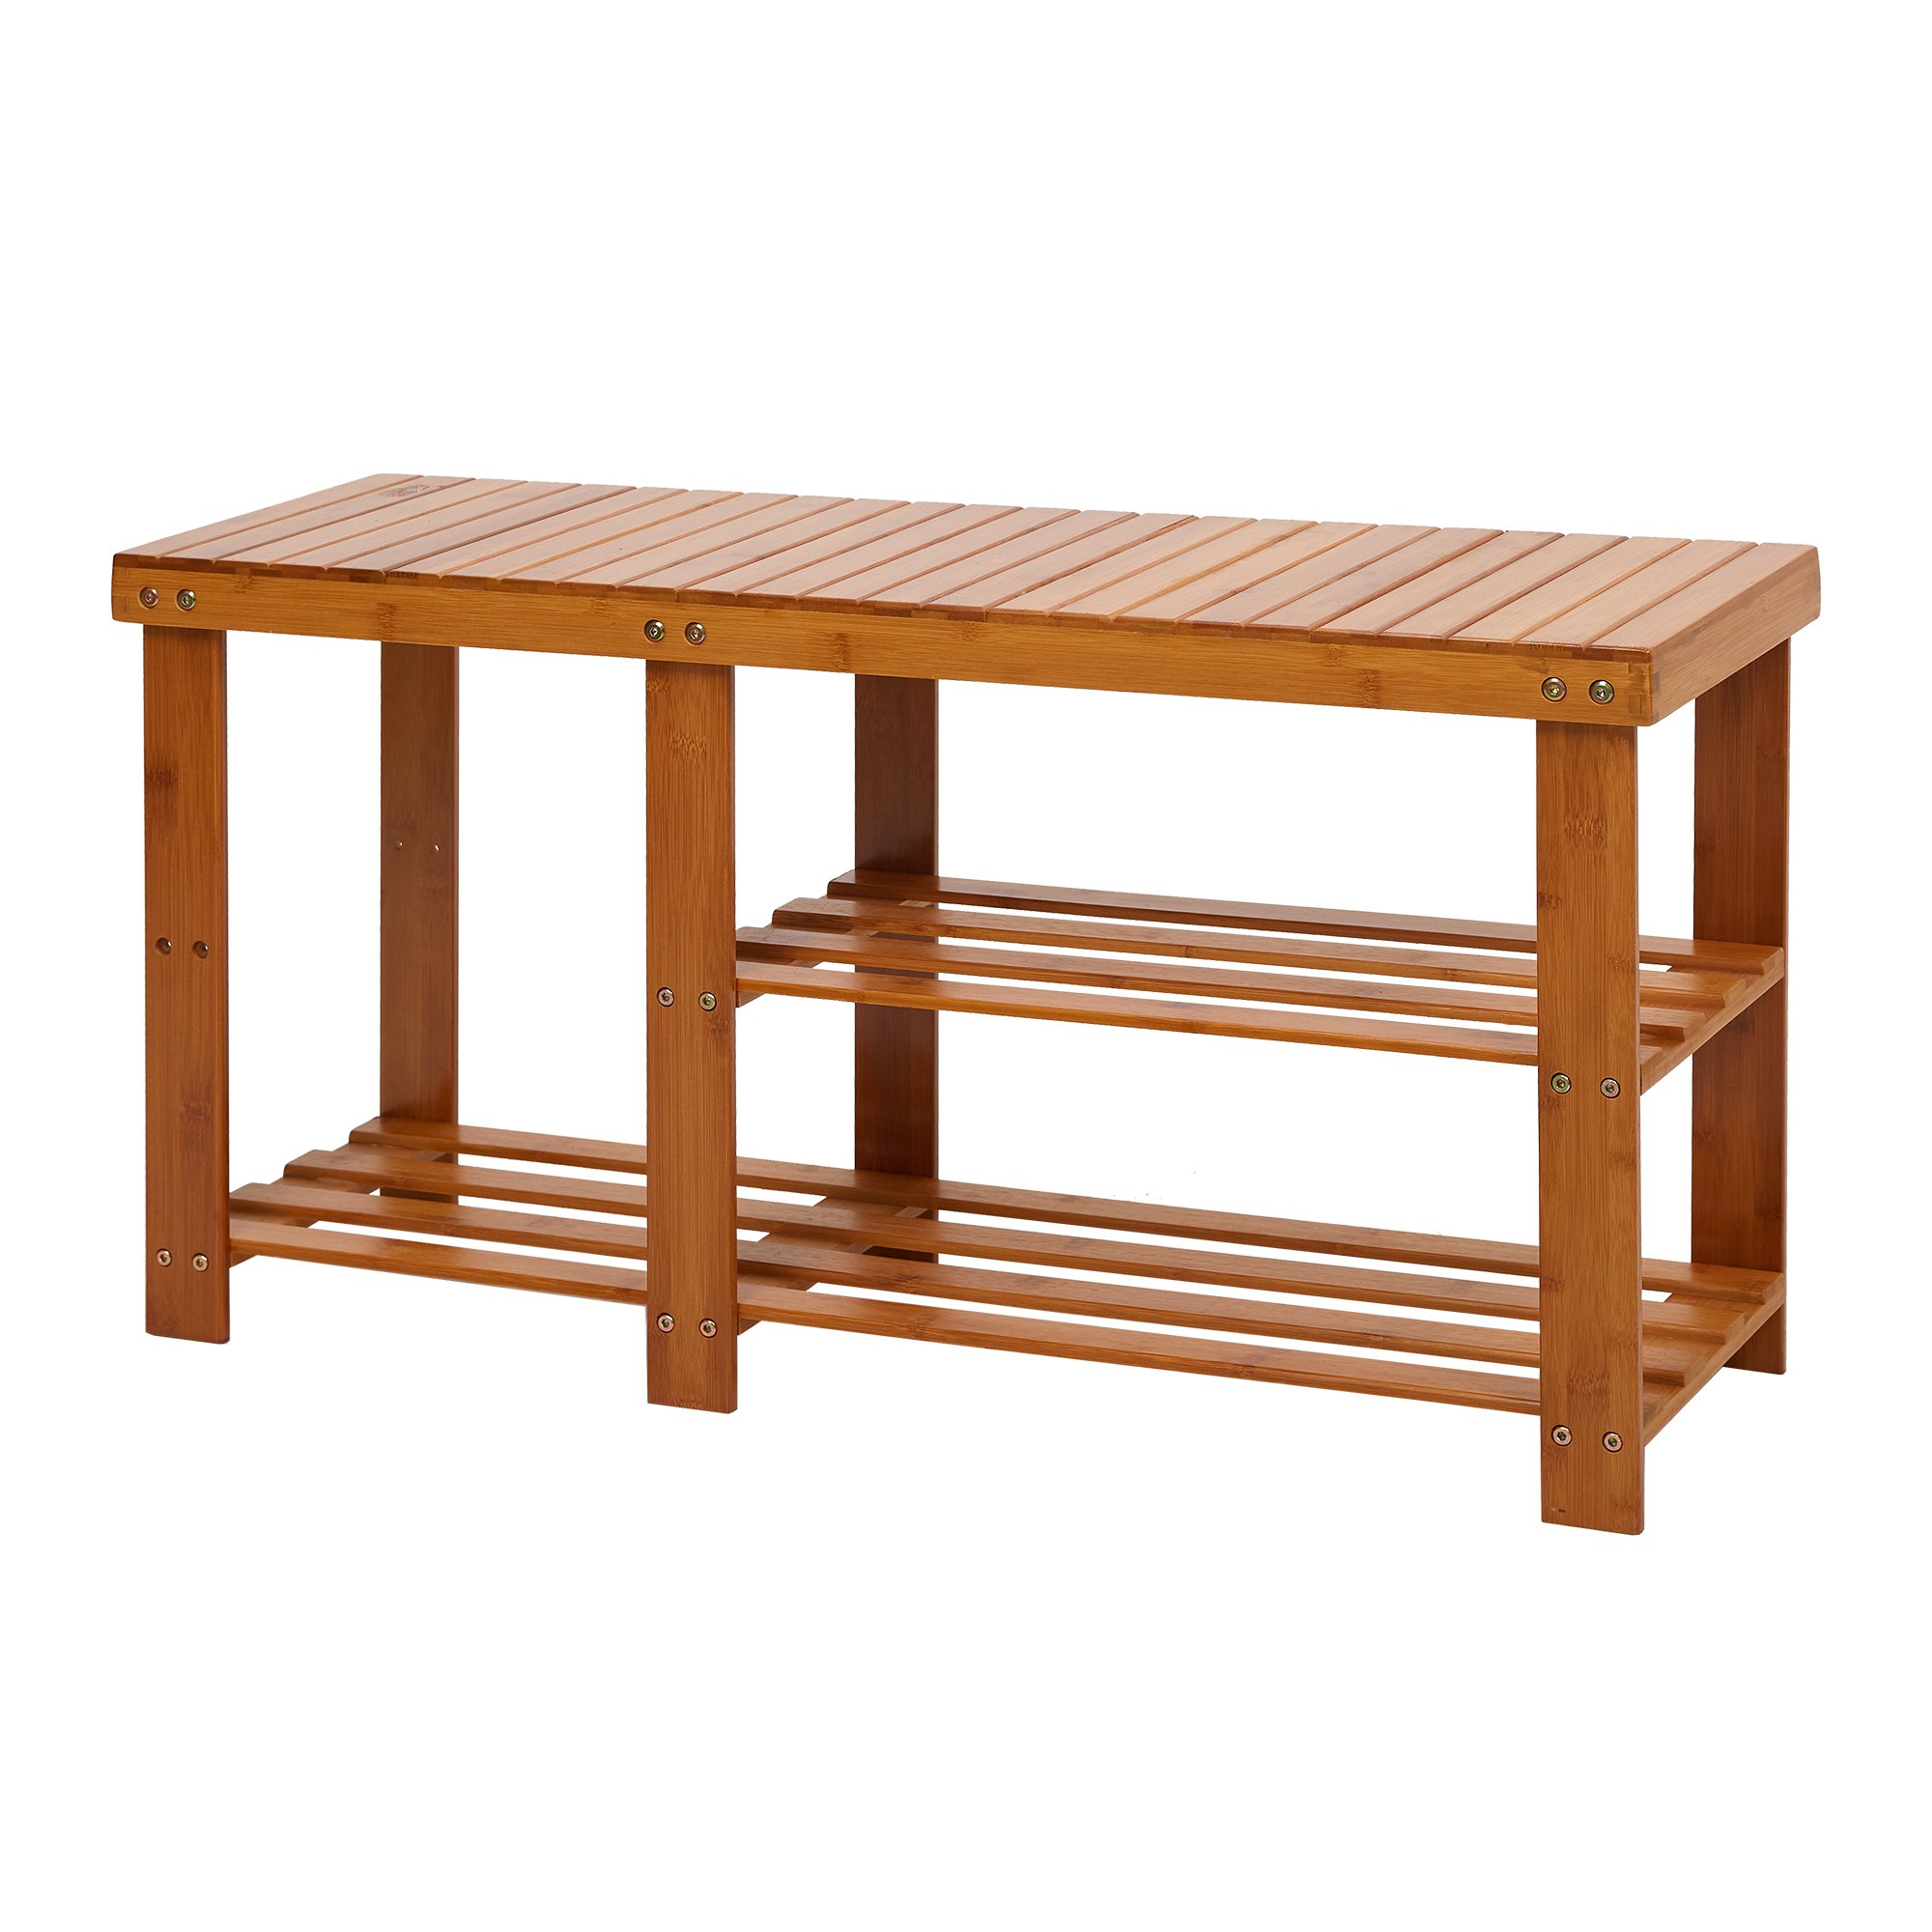 Lucky Tree 2-Tire Freestanding Shelves Boot Shoe Storage Bamboo Bench for Entryway Front Door Shoes Organizer Rack Seat